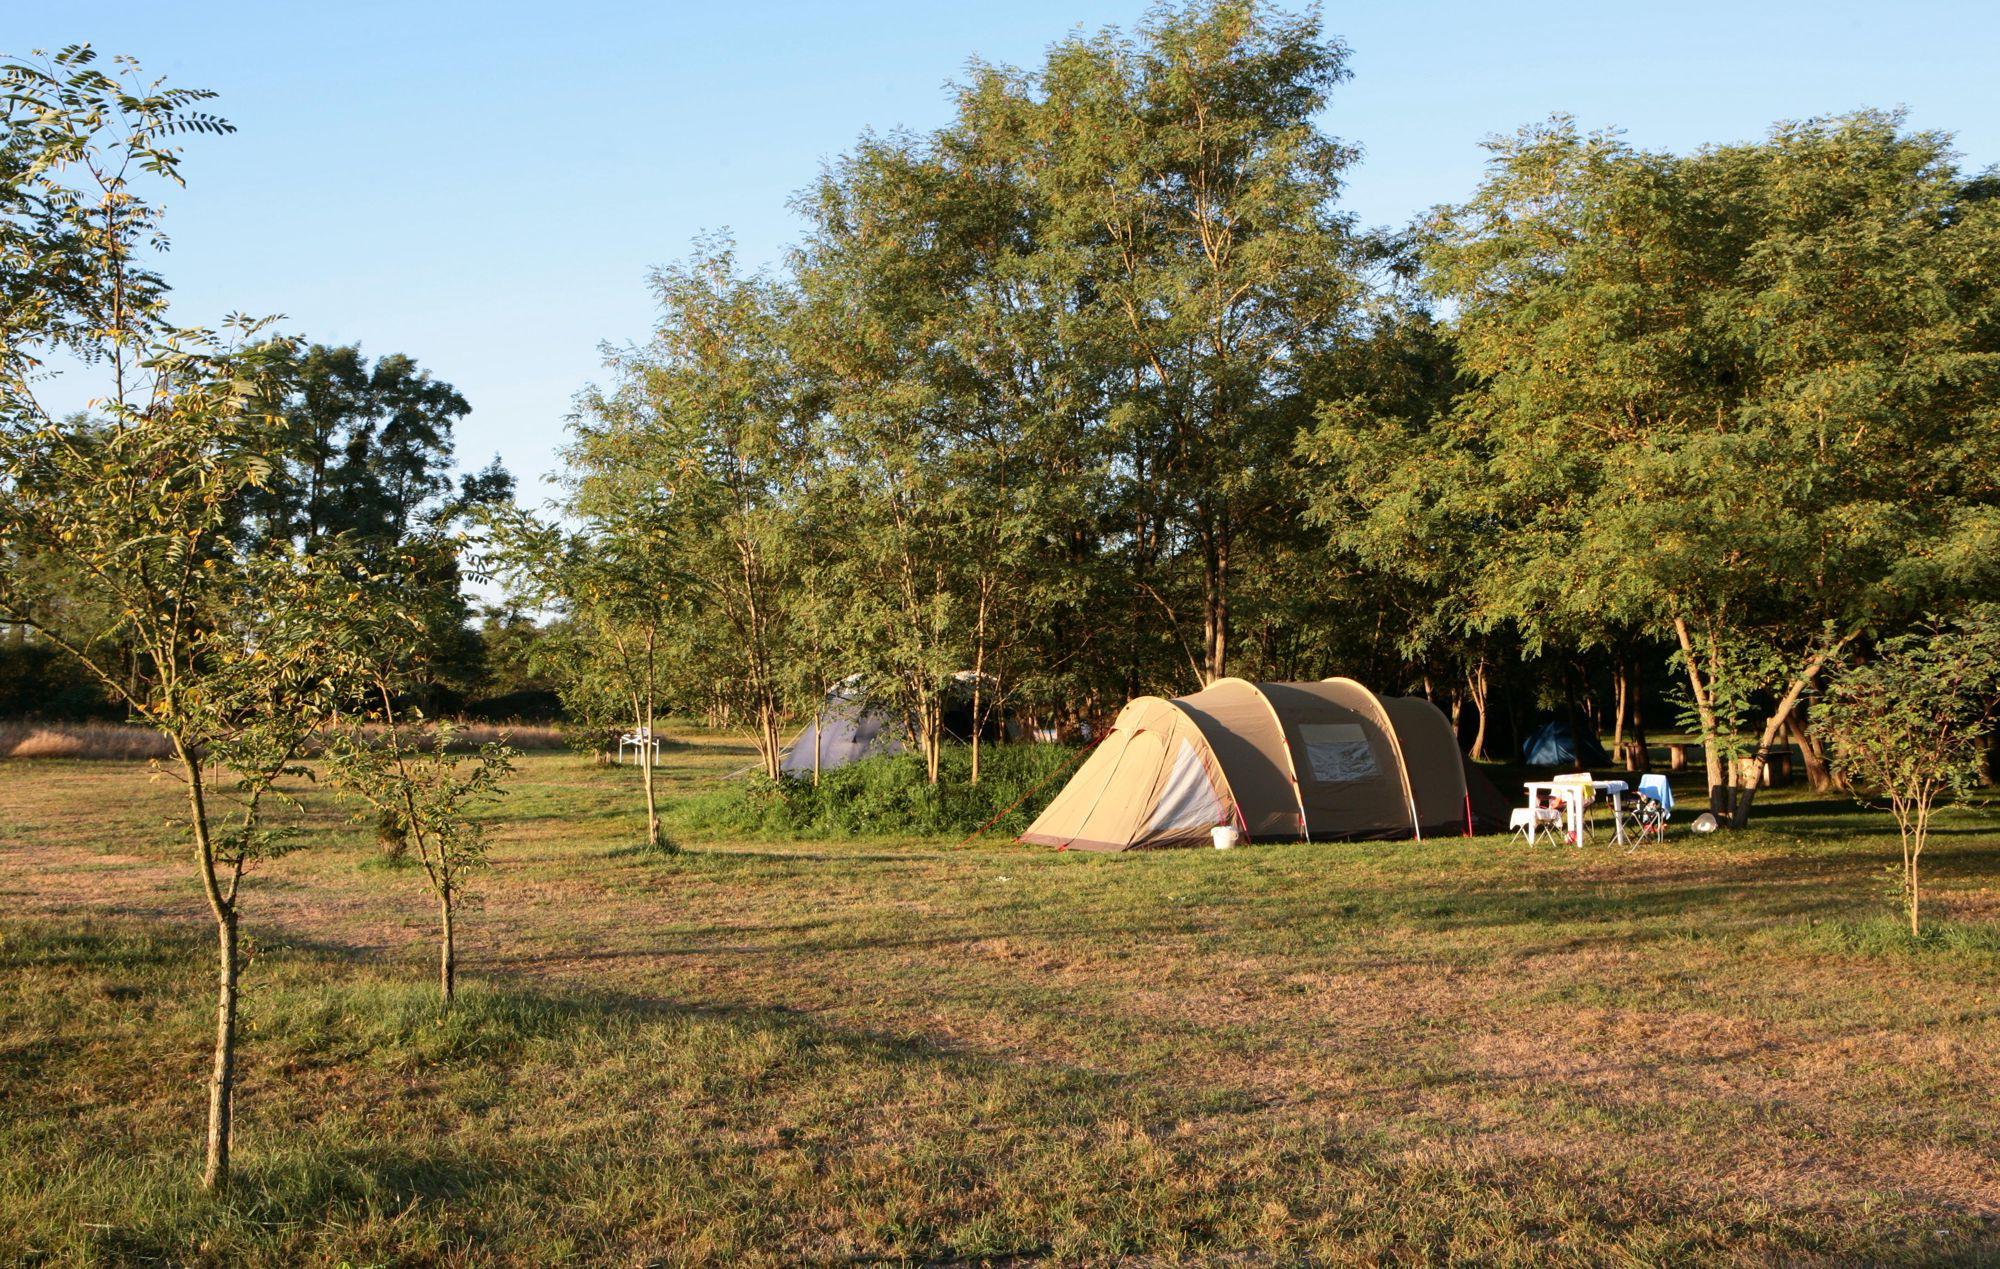 Campsites in Allier